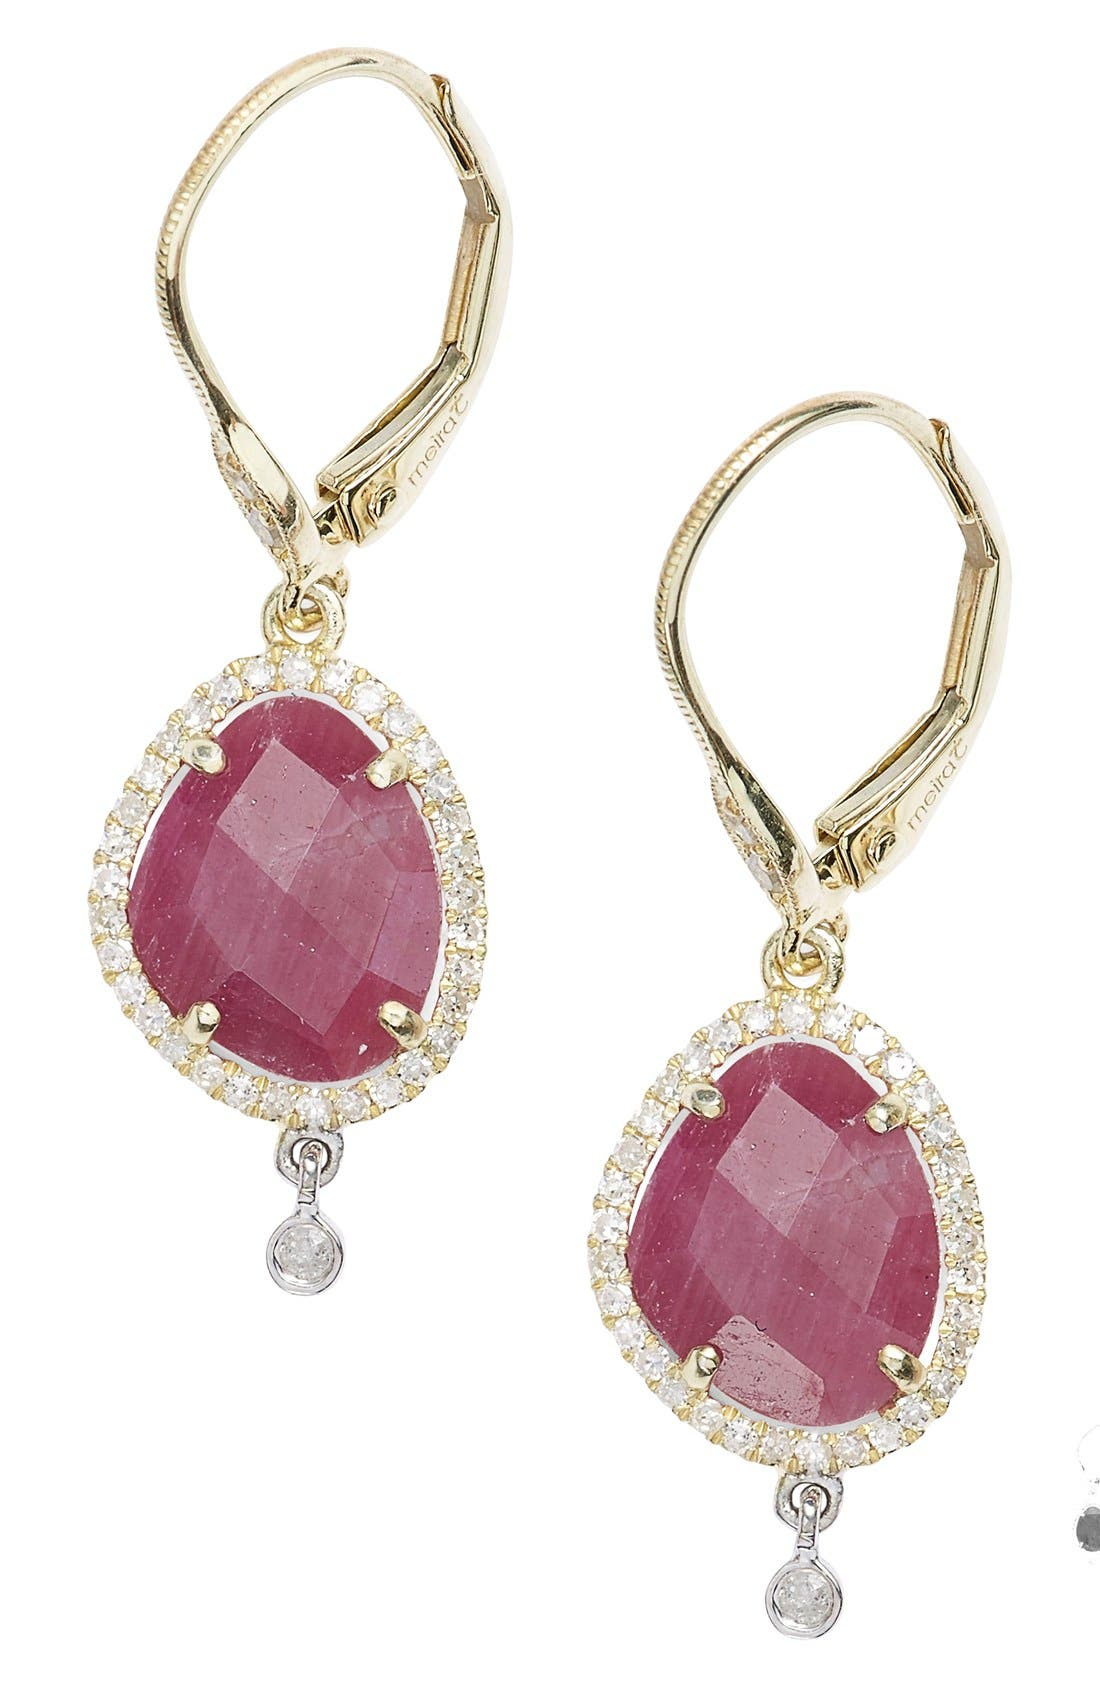 Diamond & Semiprecious Stone Drop Earrings,                         Main,                         color, Ruby